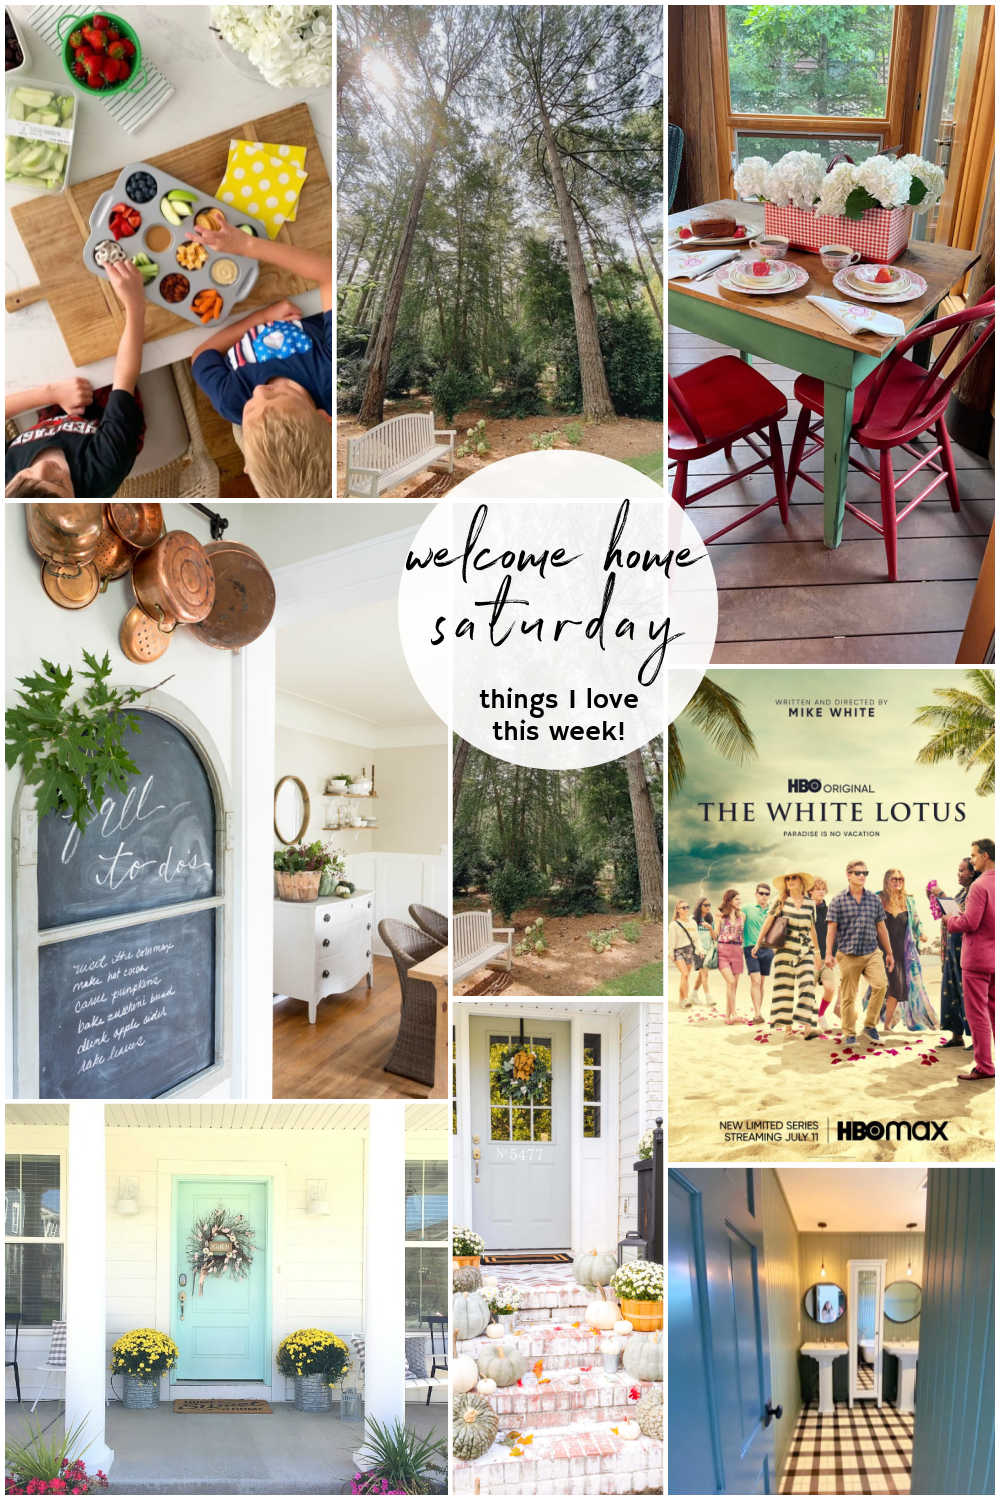 Welcome Home Saturday -- Things I Love This Week! DIY projects, bathroom remodel update and things I love this week for Summer.